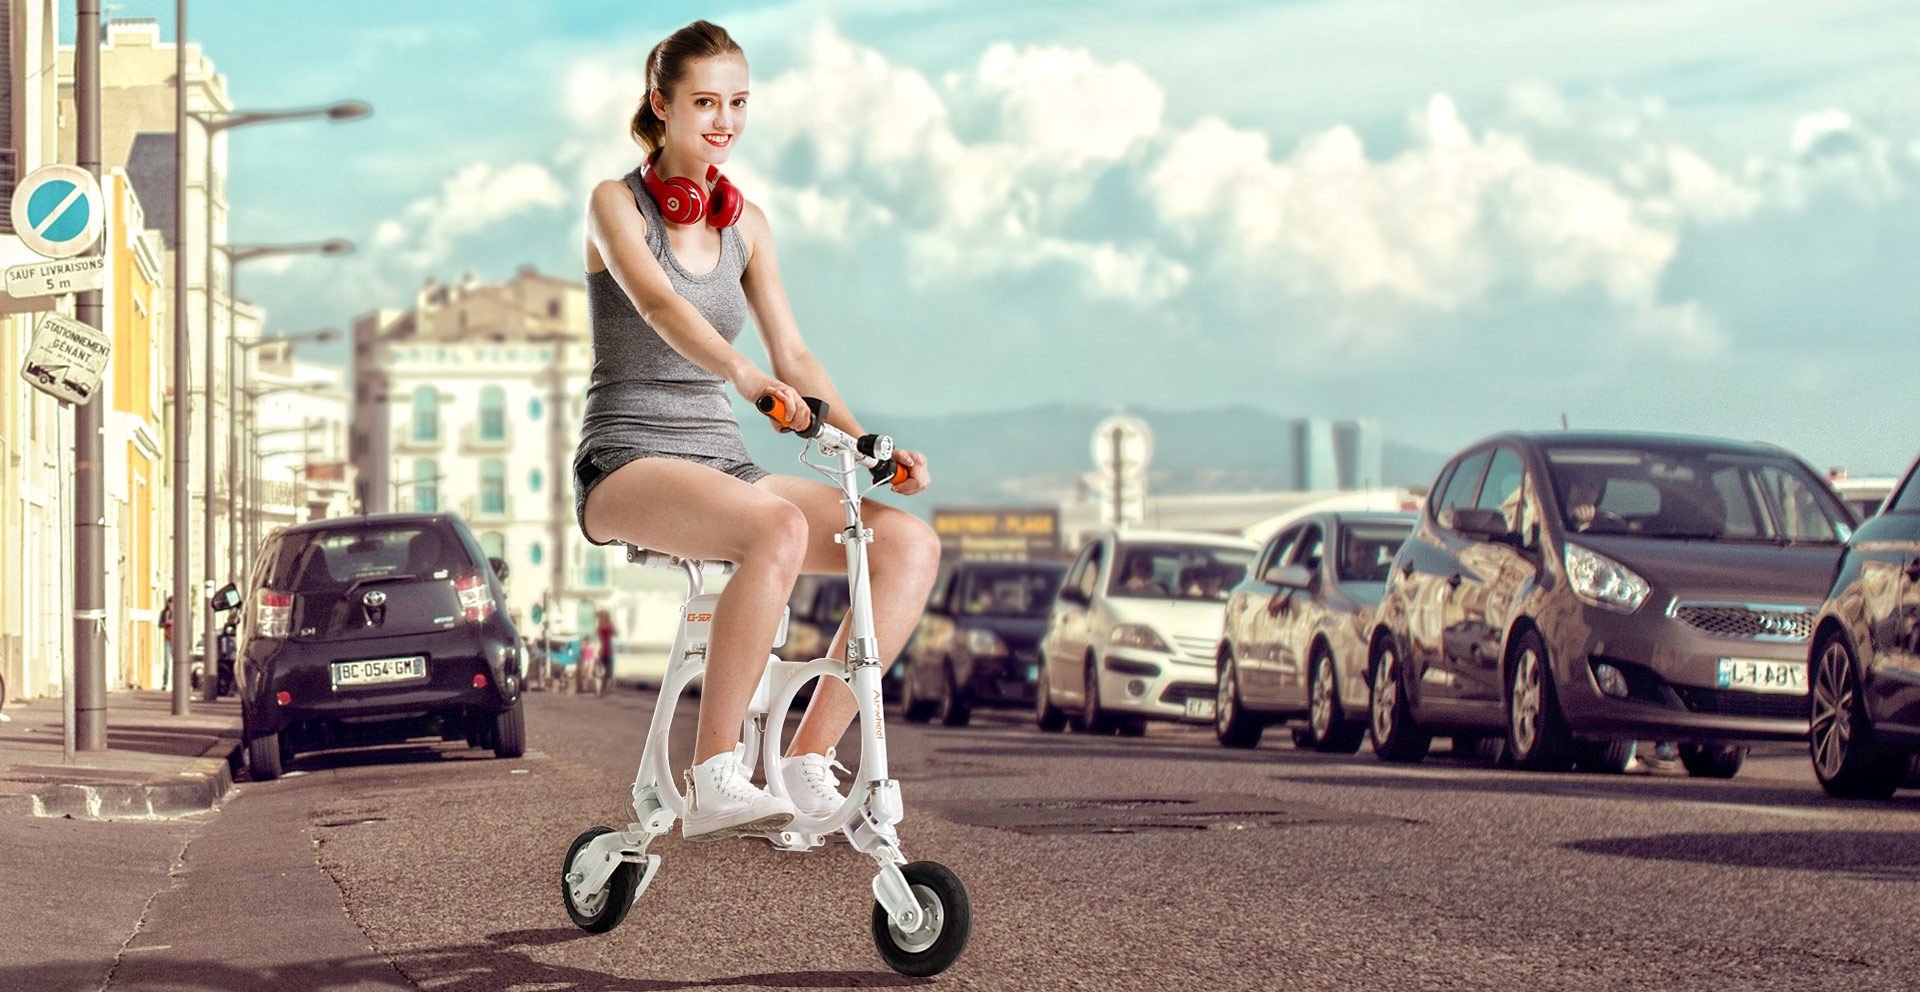 Airwheel electric bike in backpack E3